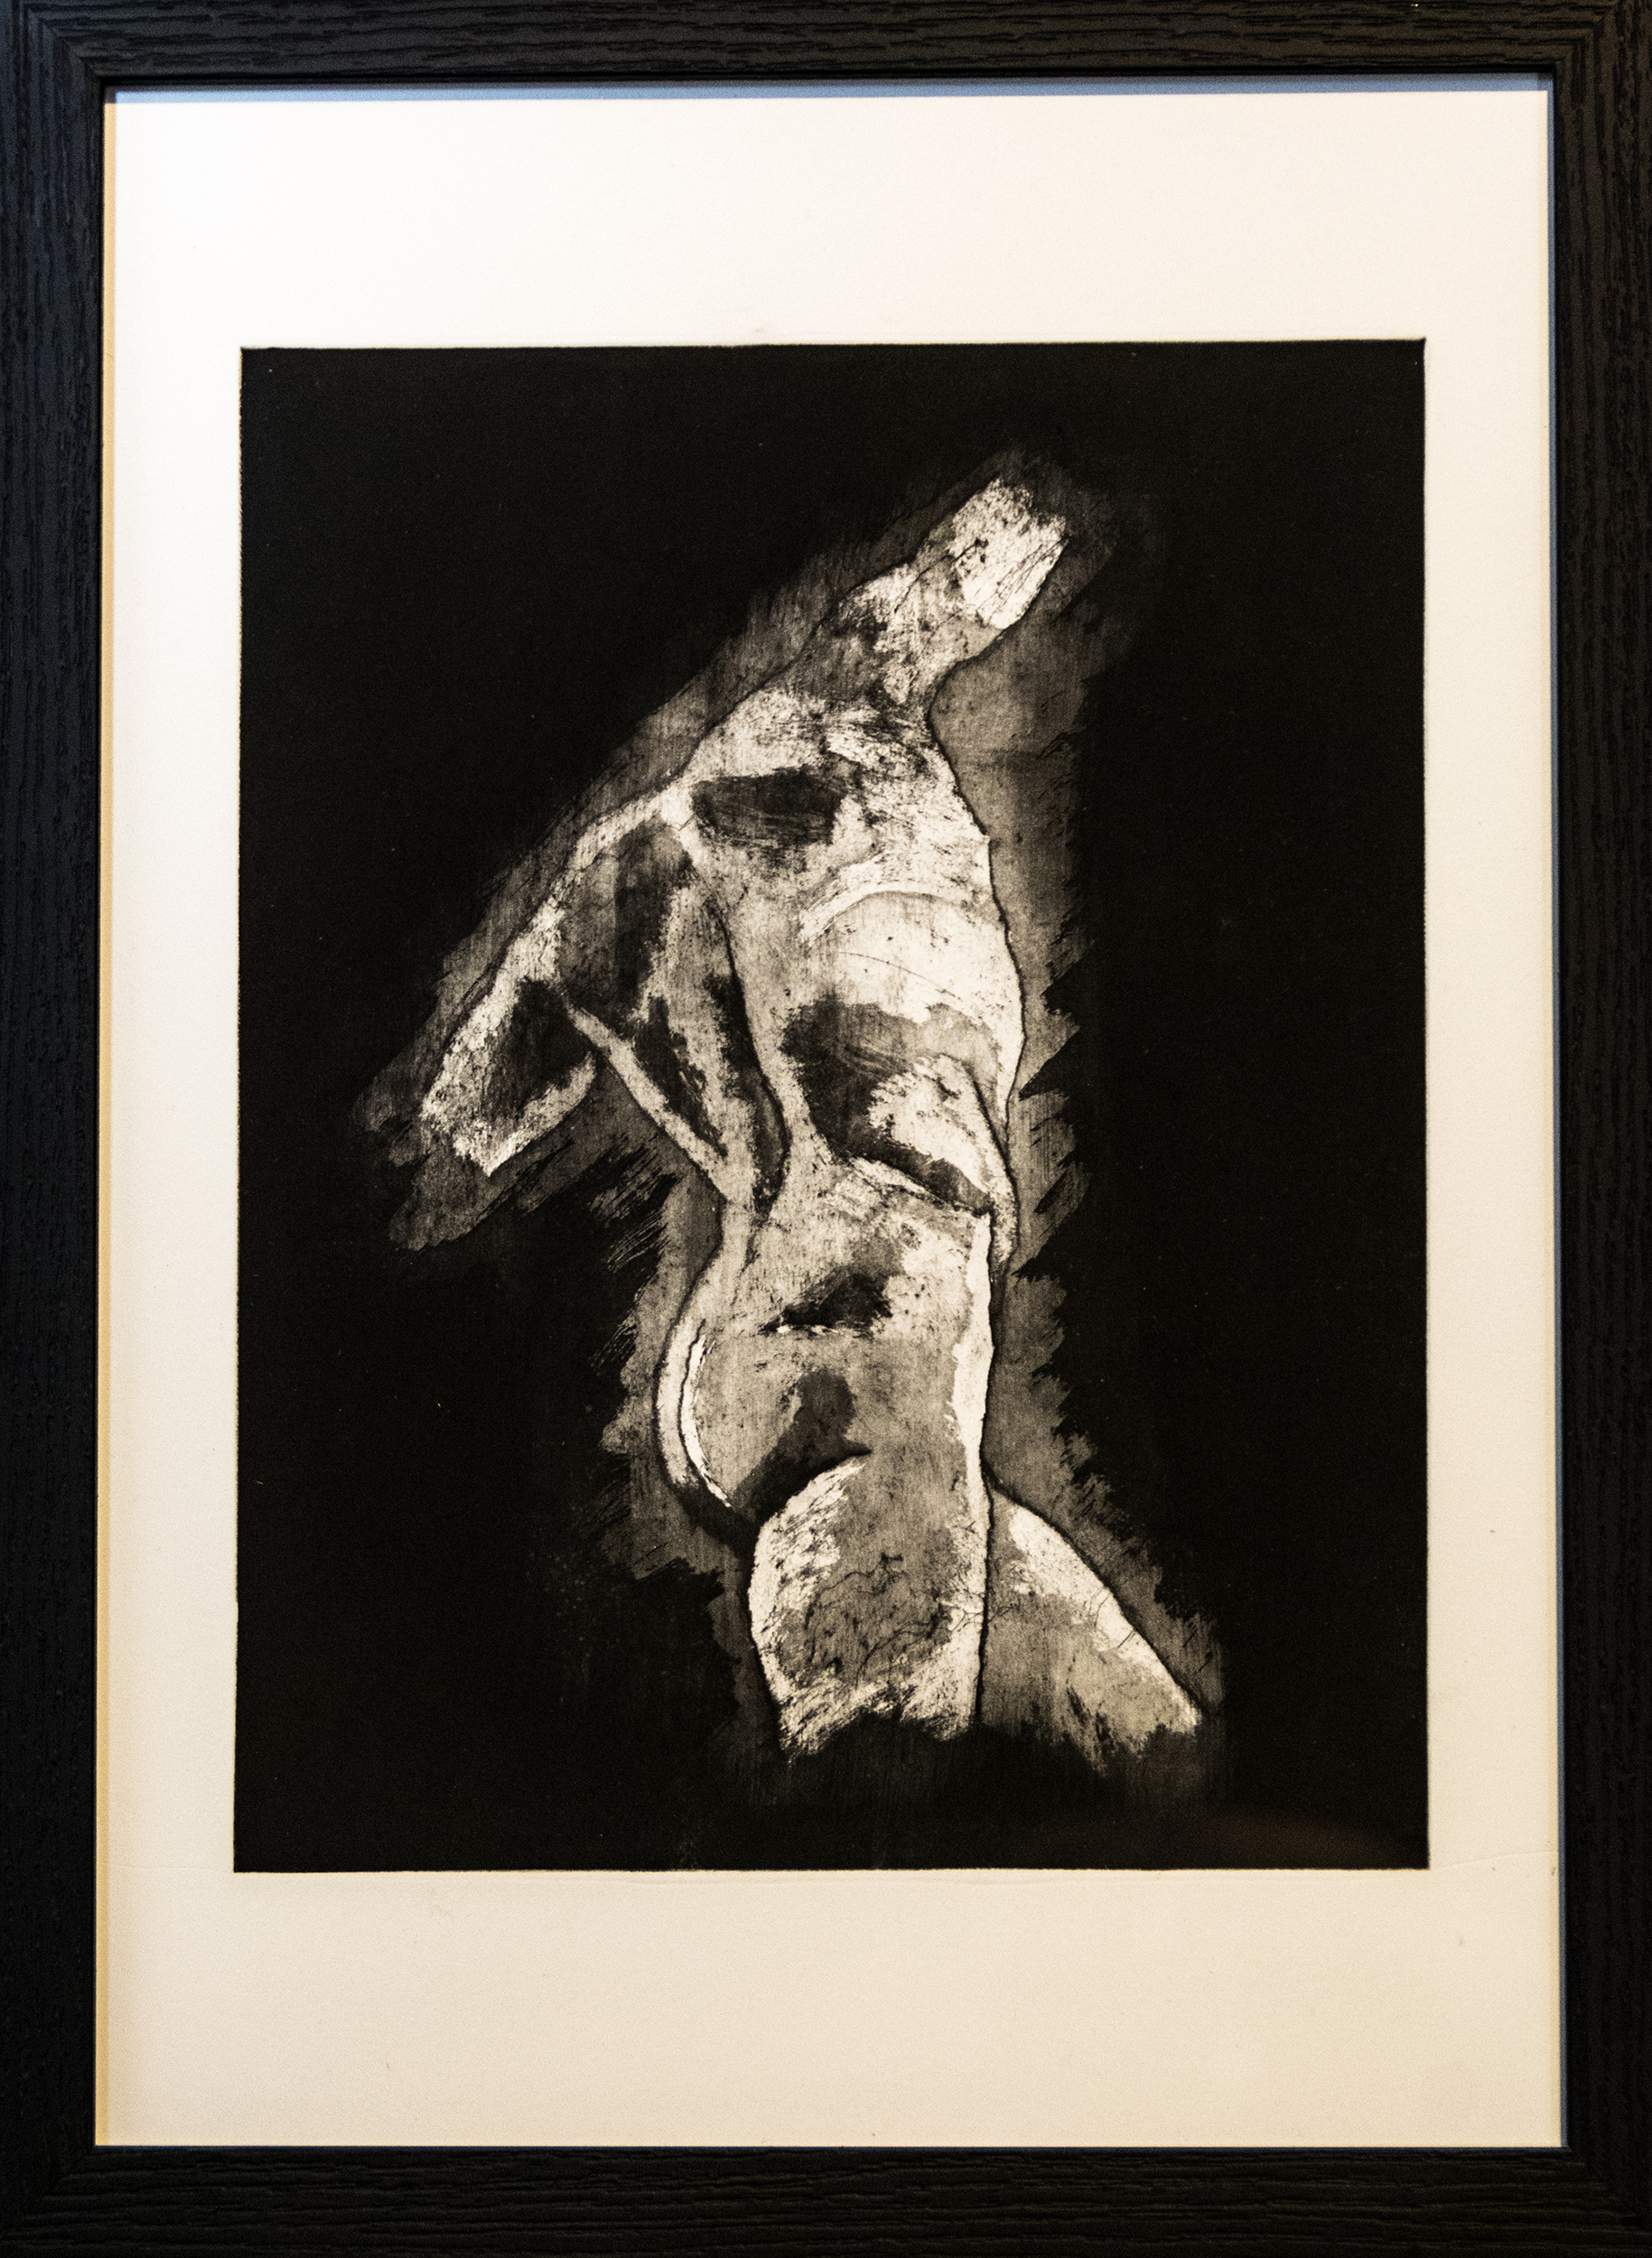 Samson, aquatint, 42x30 cm (edition of 20)